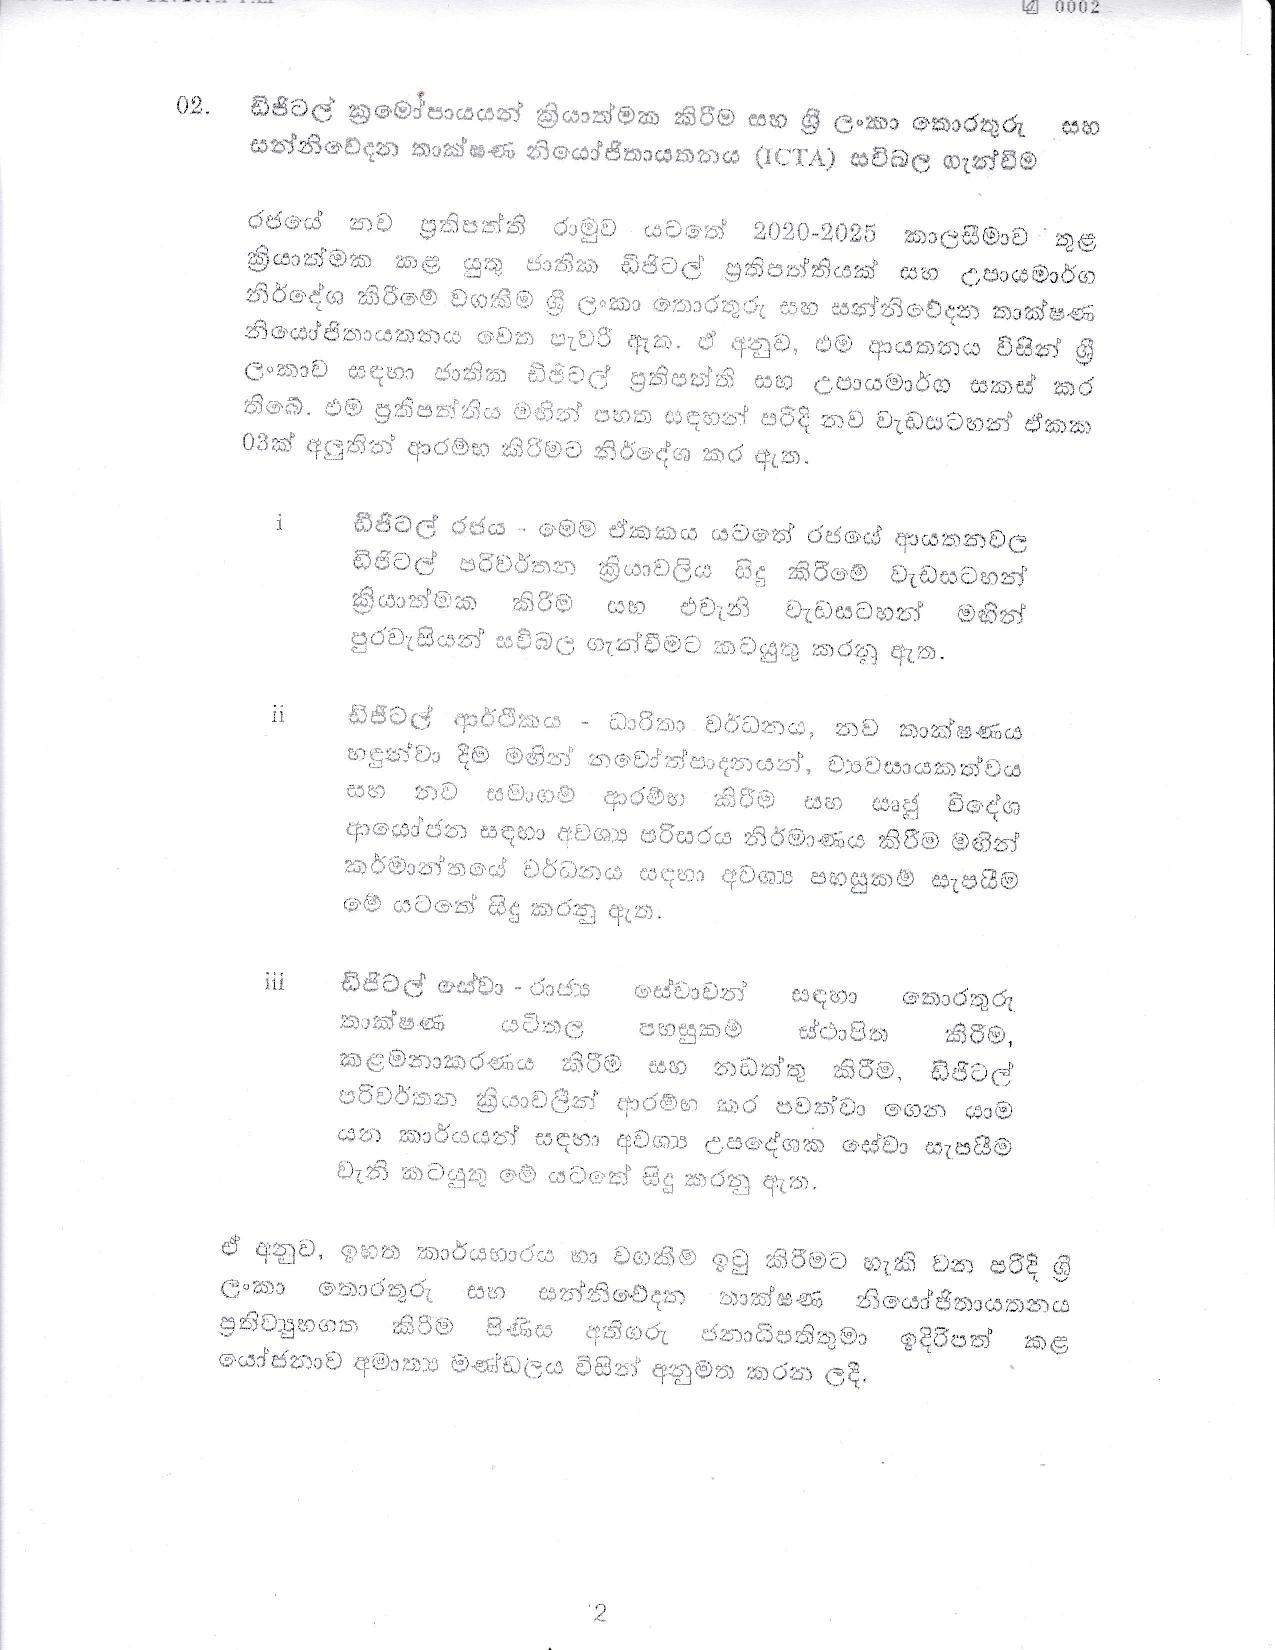 Cabinet Decision on 16.11.2020 page 002